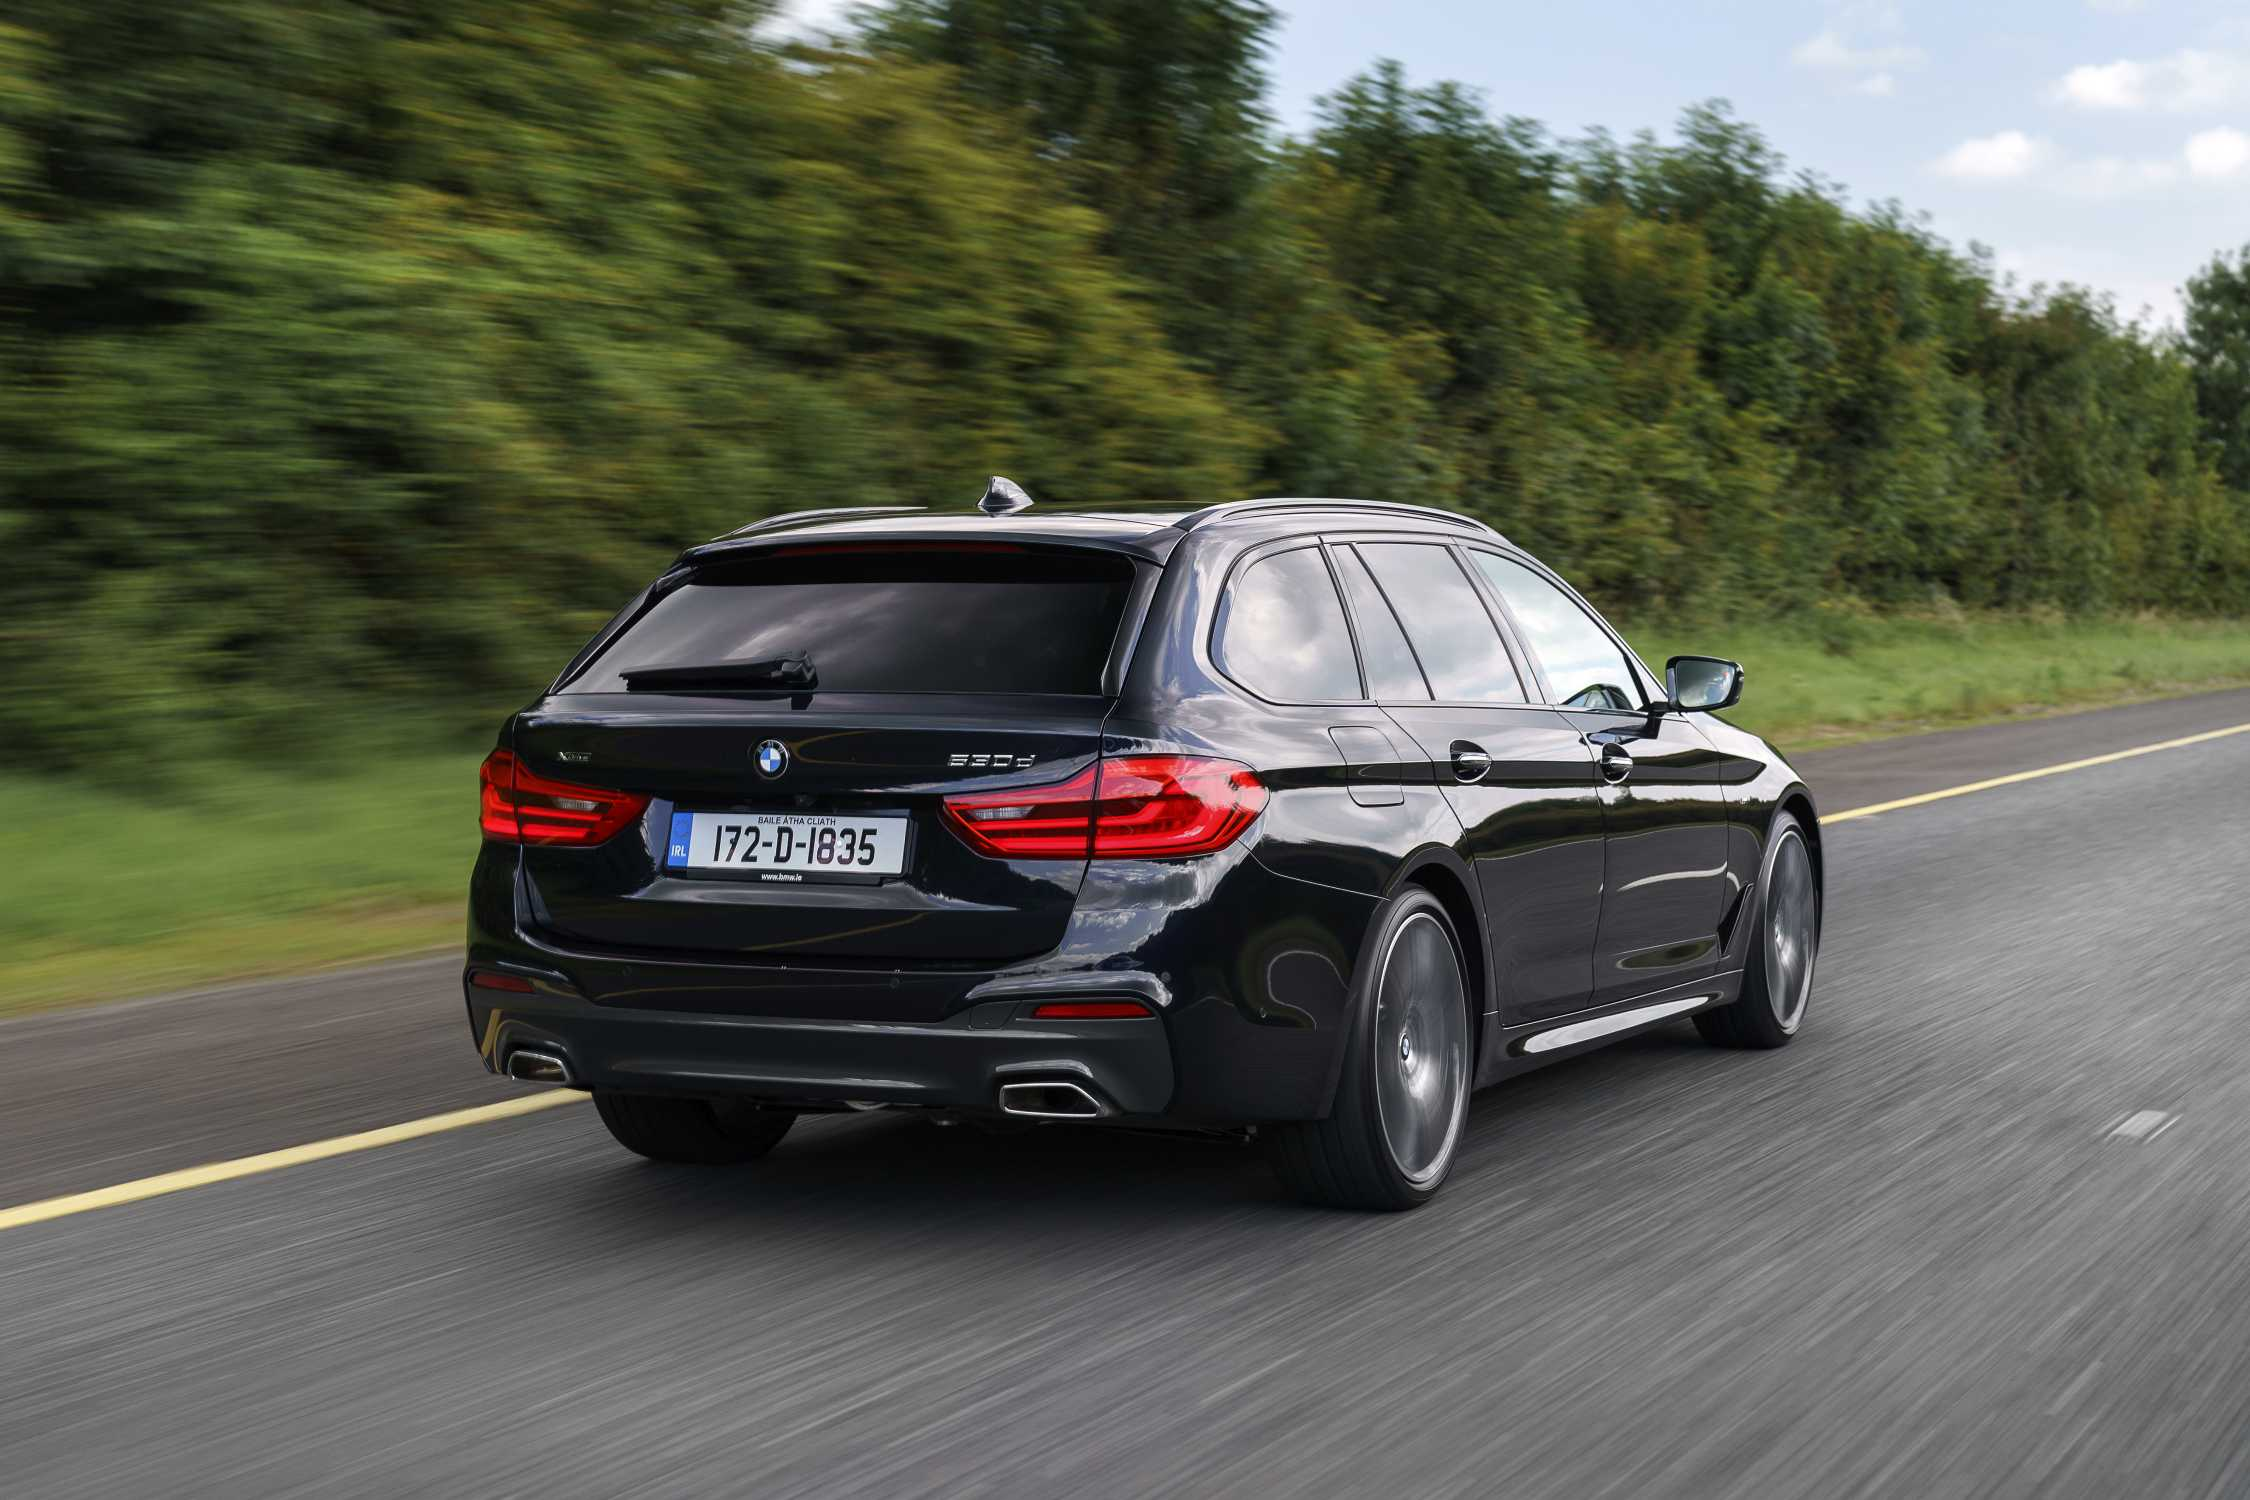 Irish Imagery Of The New Bmw 5 Series Touring 530d Xdrive M